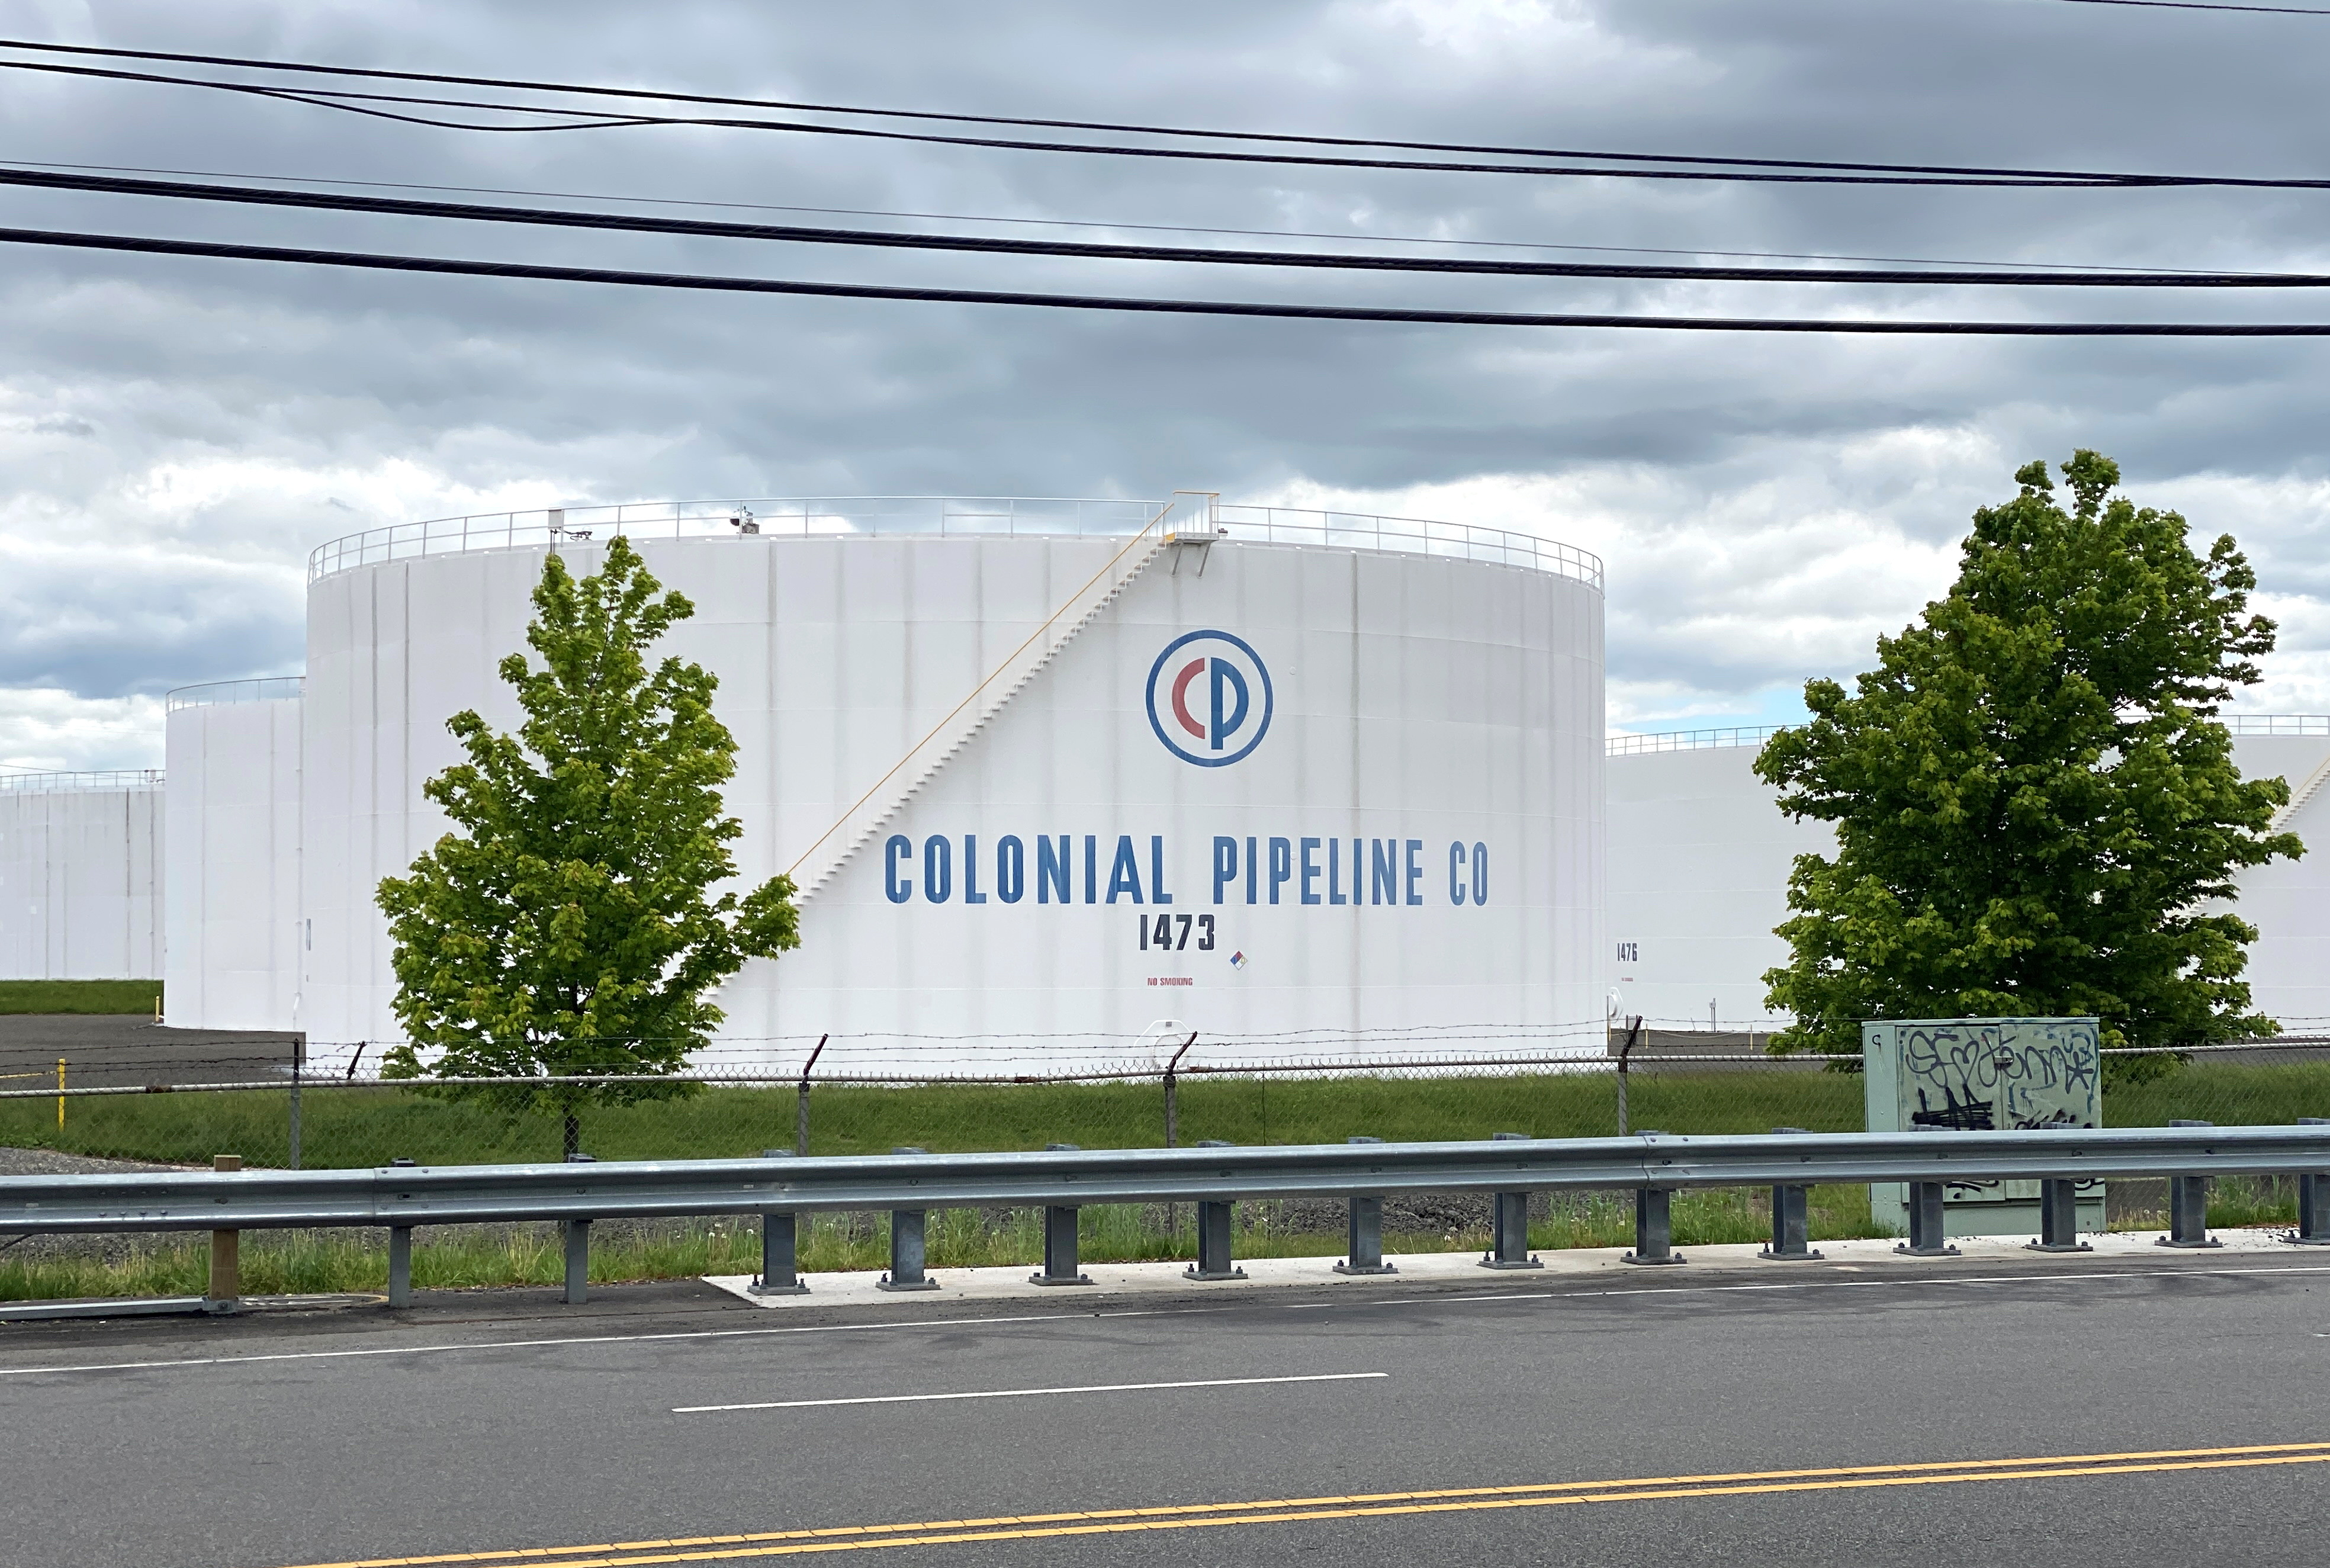 Holding tanks are pictured at Colonial Pipeline's Linden Junction Tank Farm in Woodbridge, New Jersey, U.S., May 10, 2021. REUTERS/Hussein Waaile